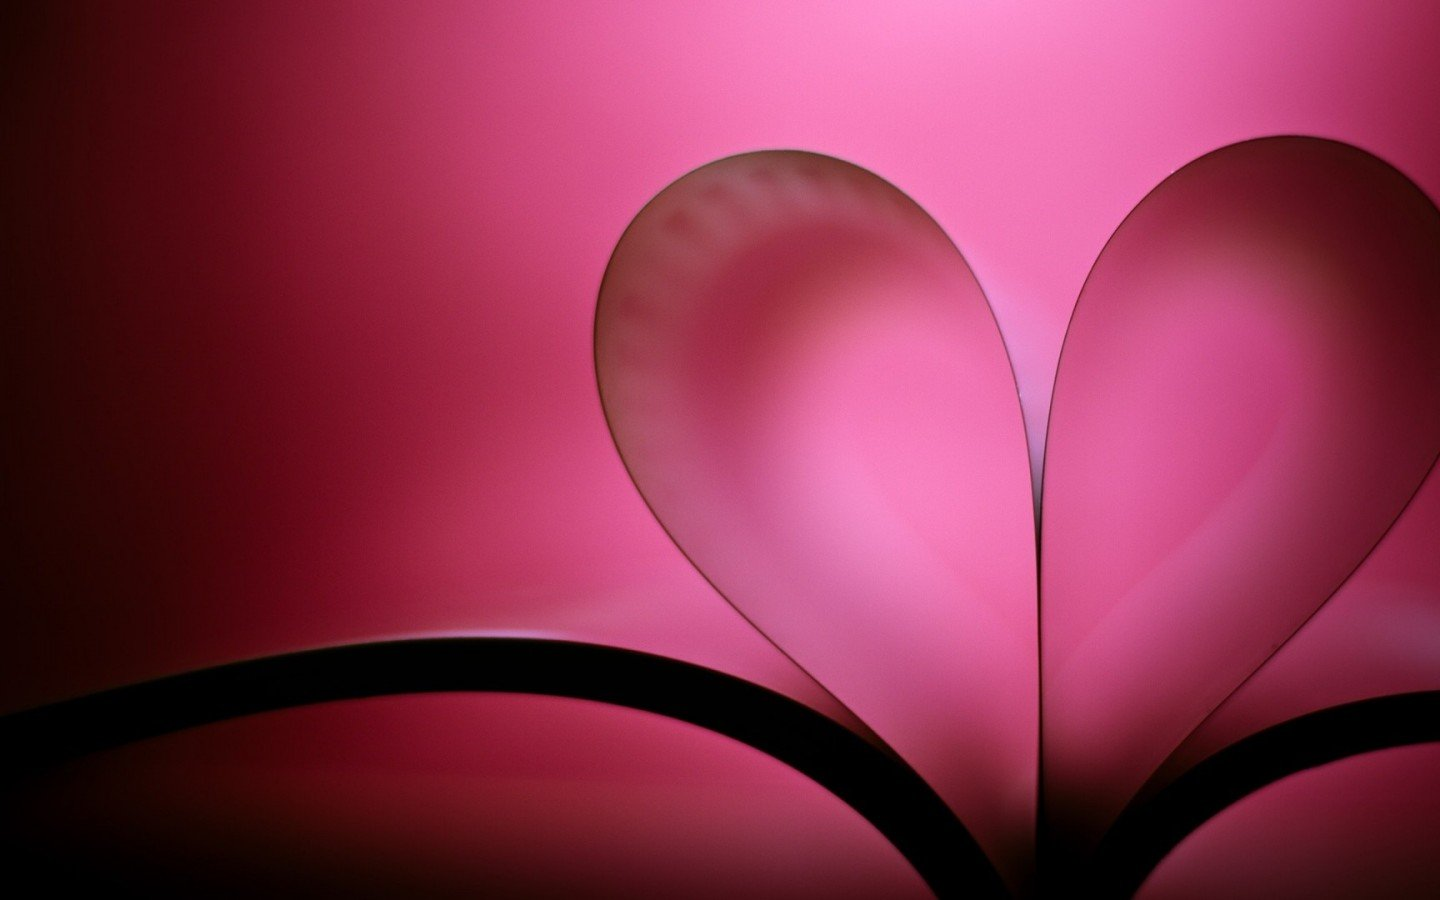 V Love Wallpaper Hd : HD Love Wallpapers for Laptop - WallpaperSafari